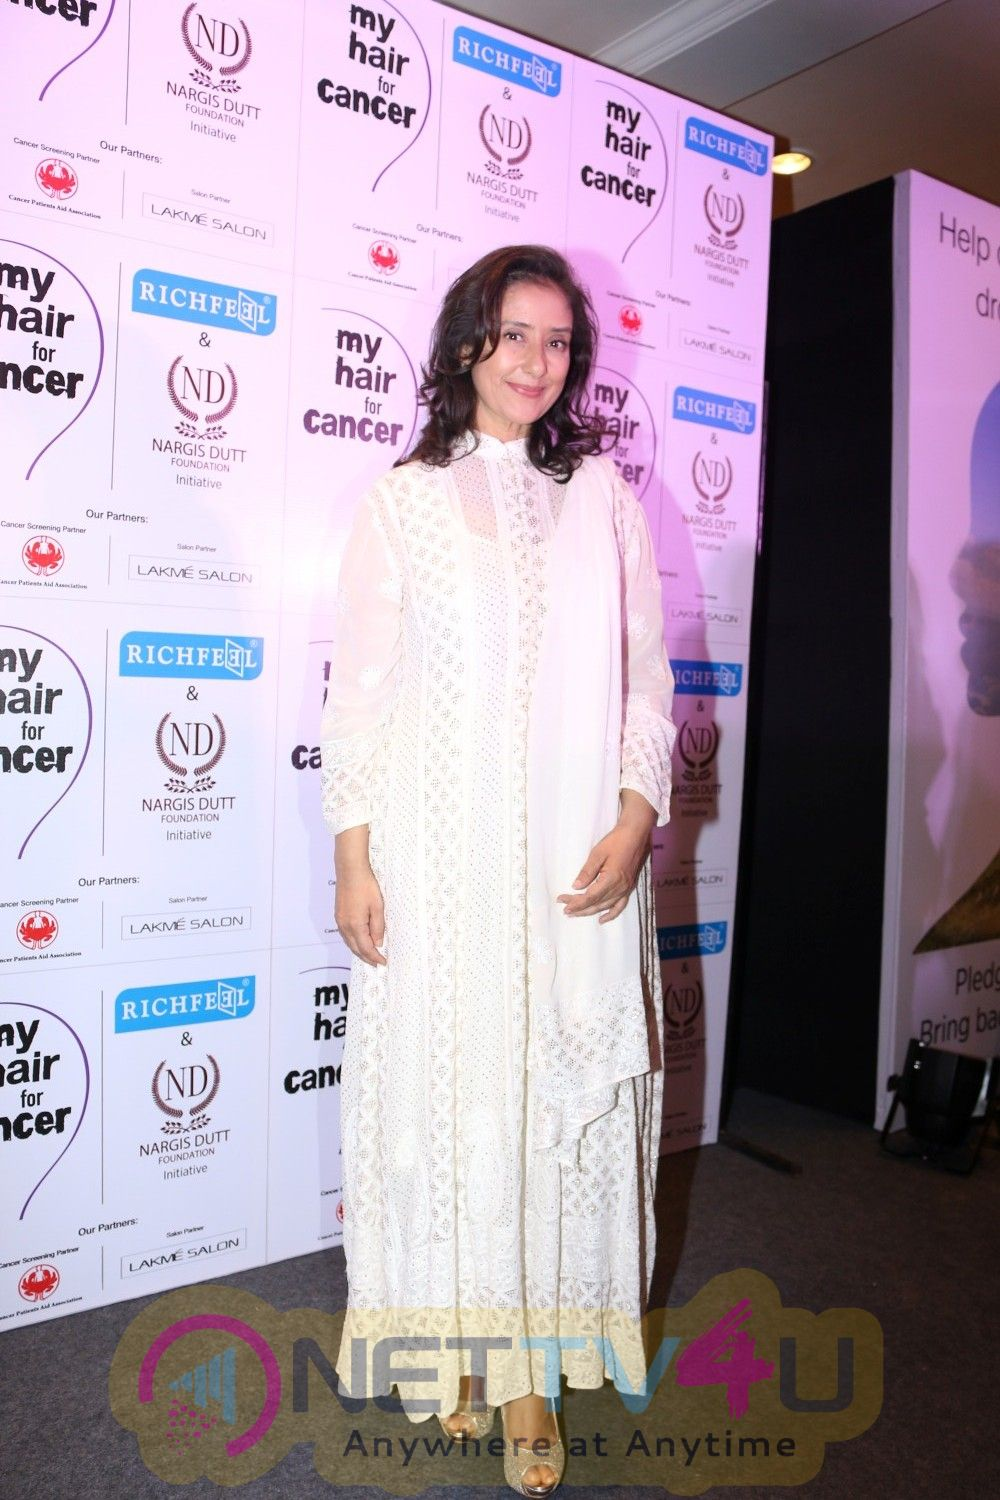 Richfeel And Nargis Dutt Foundation Come Together To Launch My Hair For Cancer